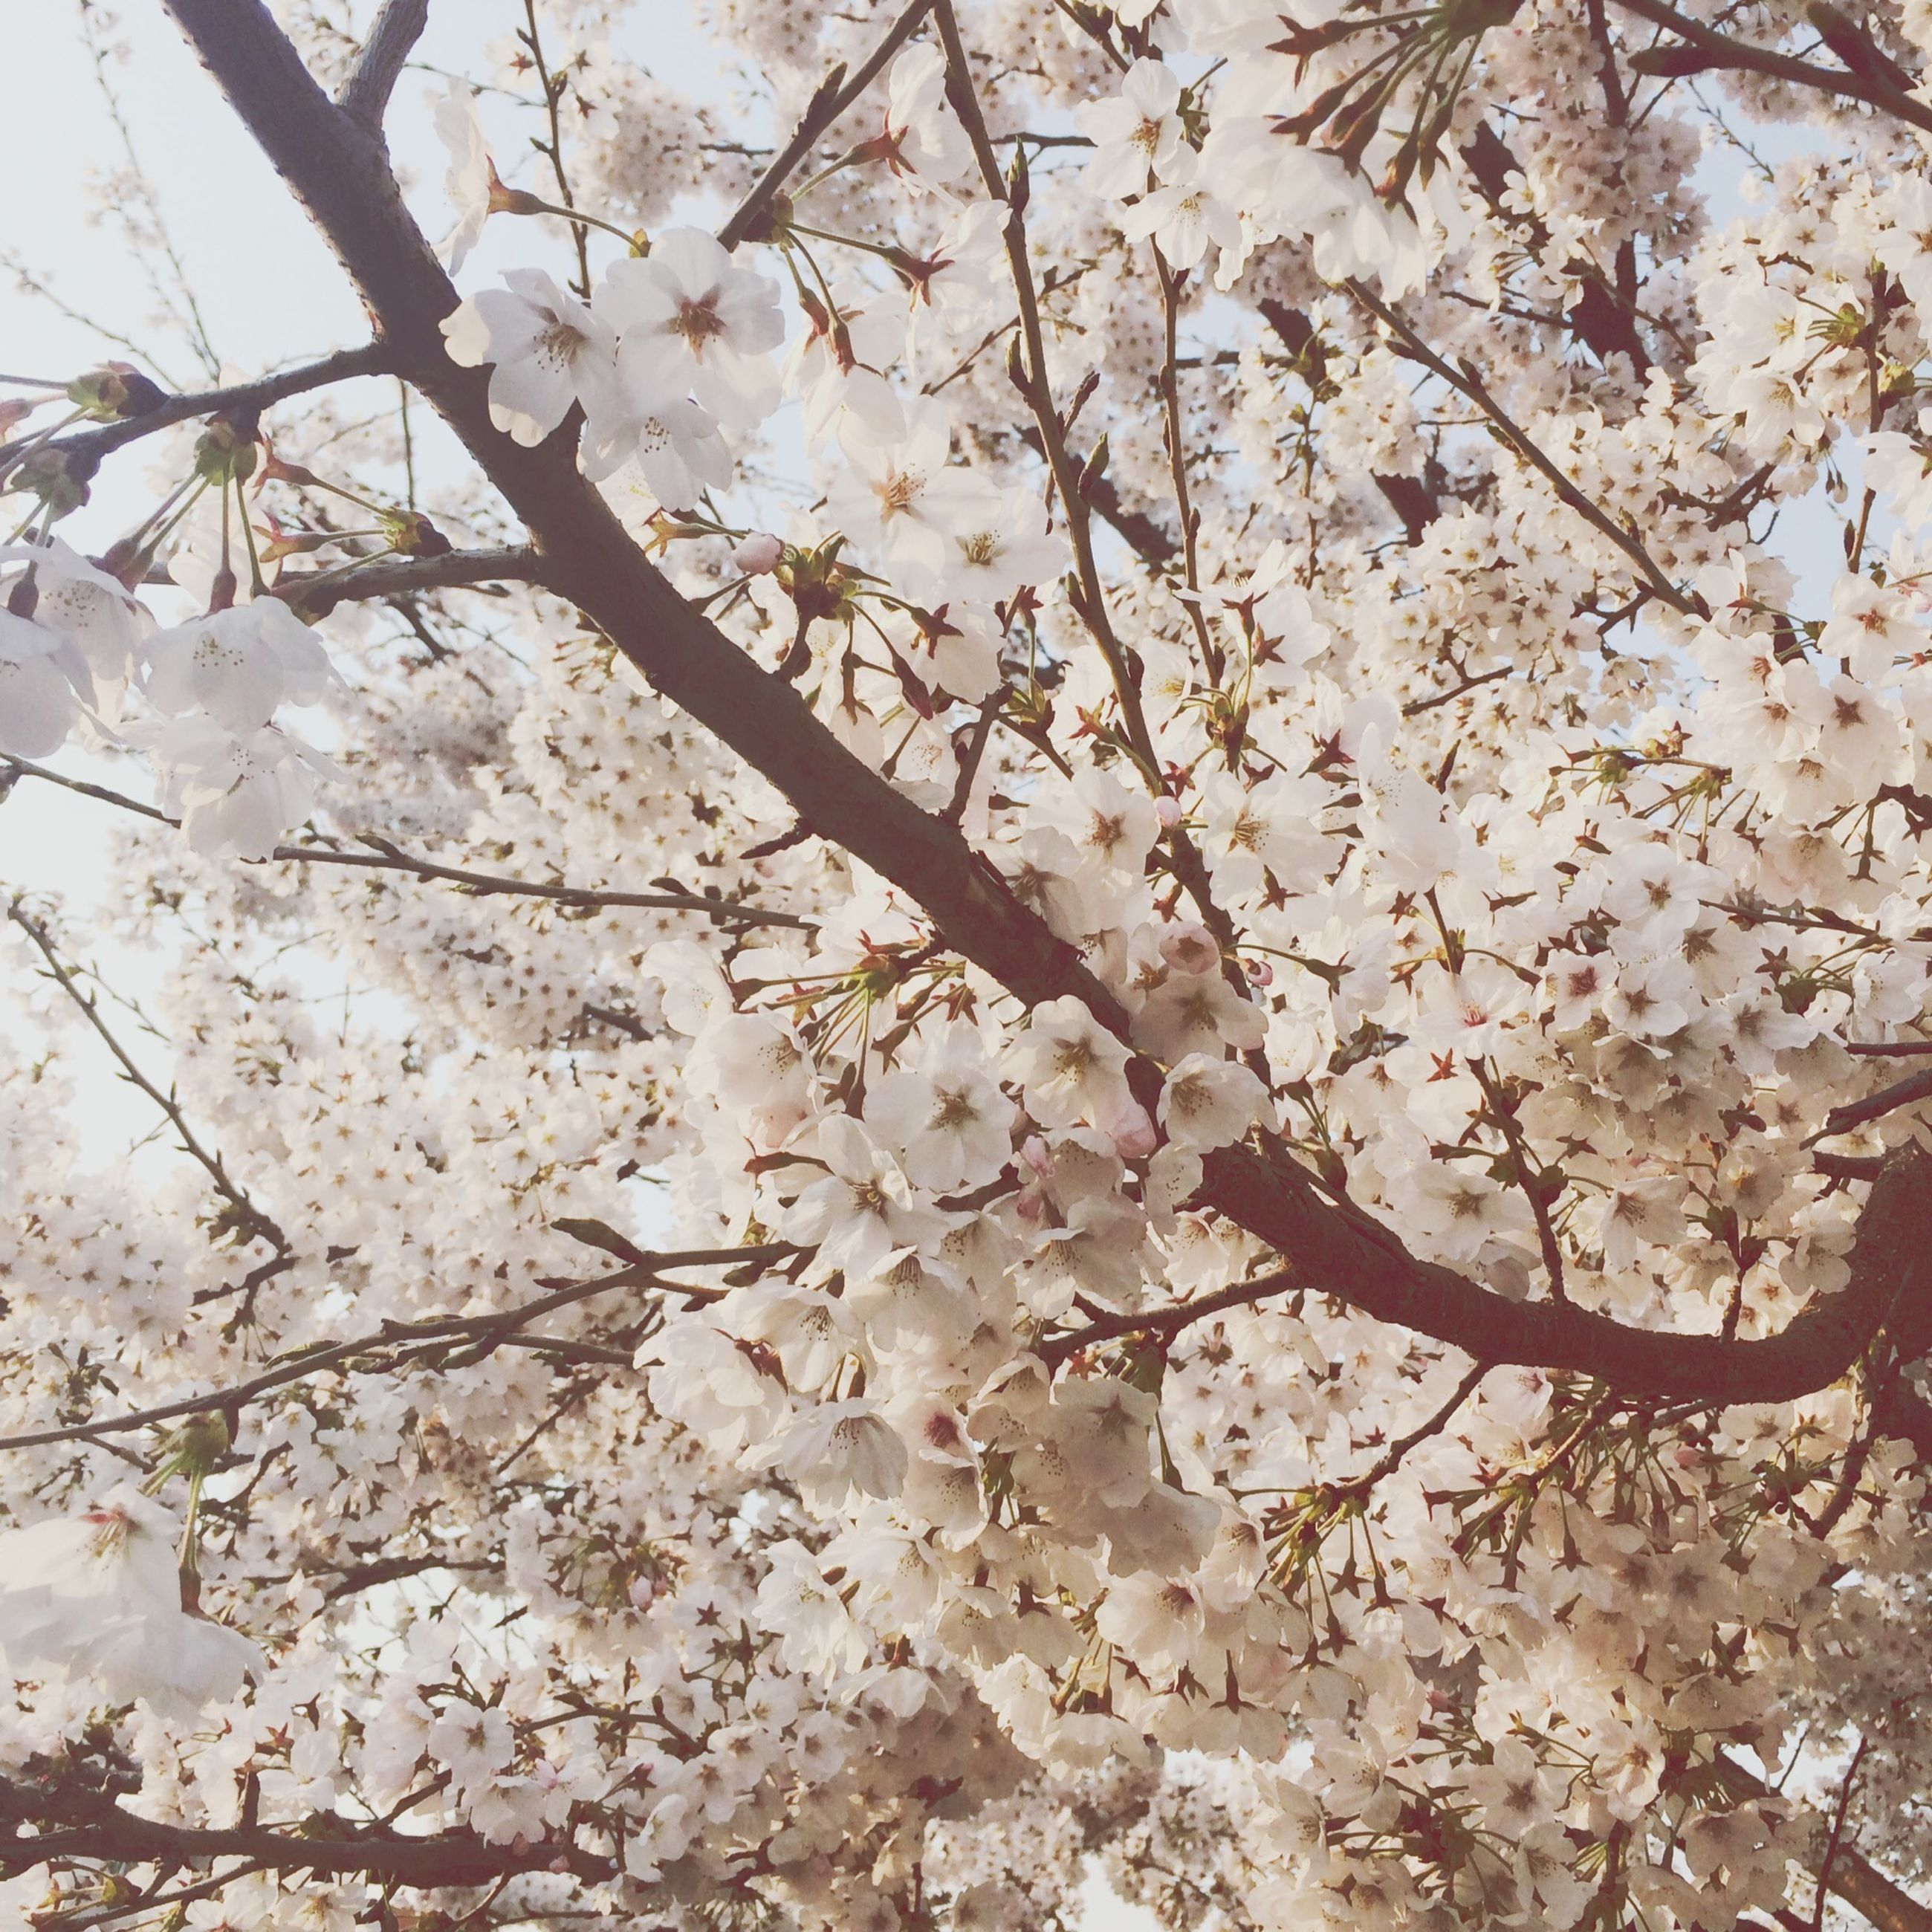 flower, branch, tree, freshness, cherry blossom, blossom, growth, low angle view, fragility, cherry tree, beauty in nature, nature, springtime, white color, in bloom, fruit tree, blooming, sky, twig, petal